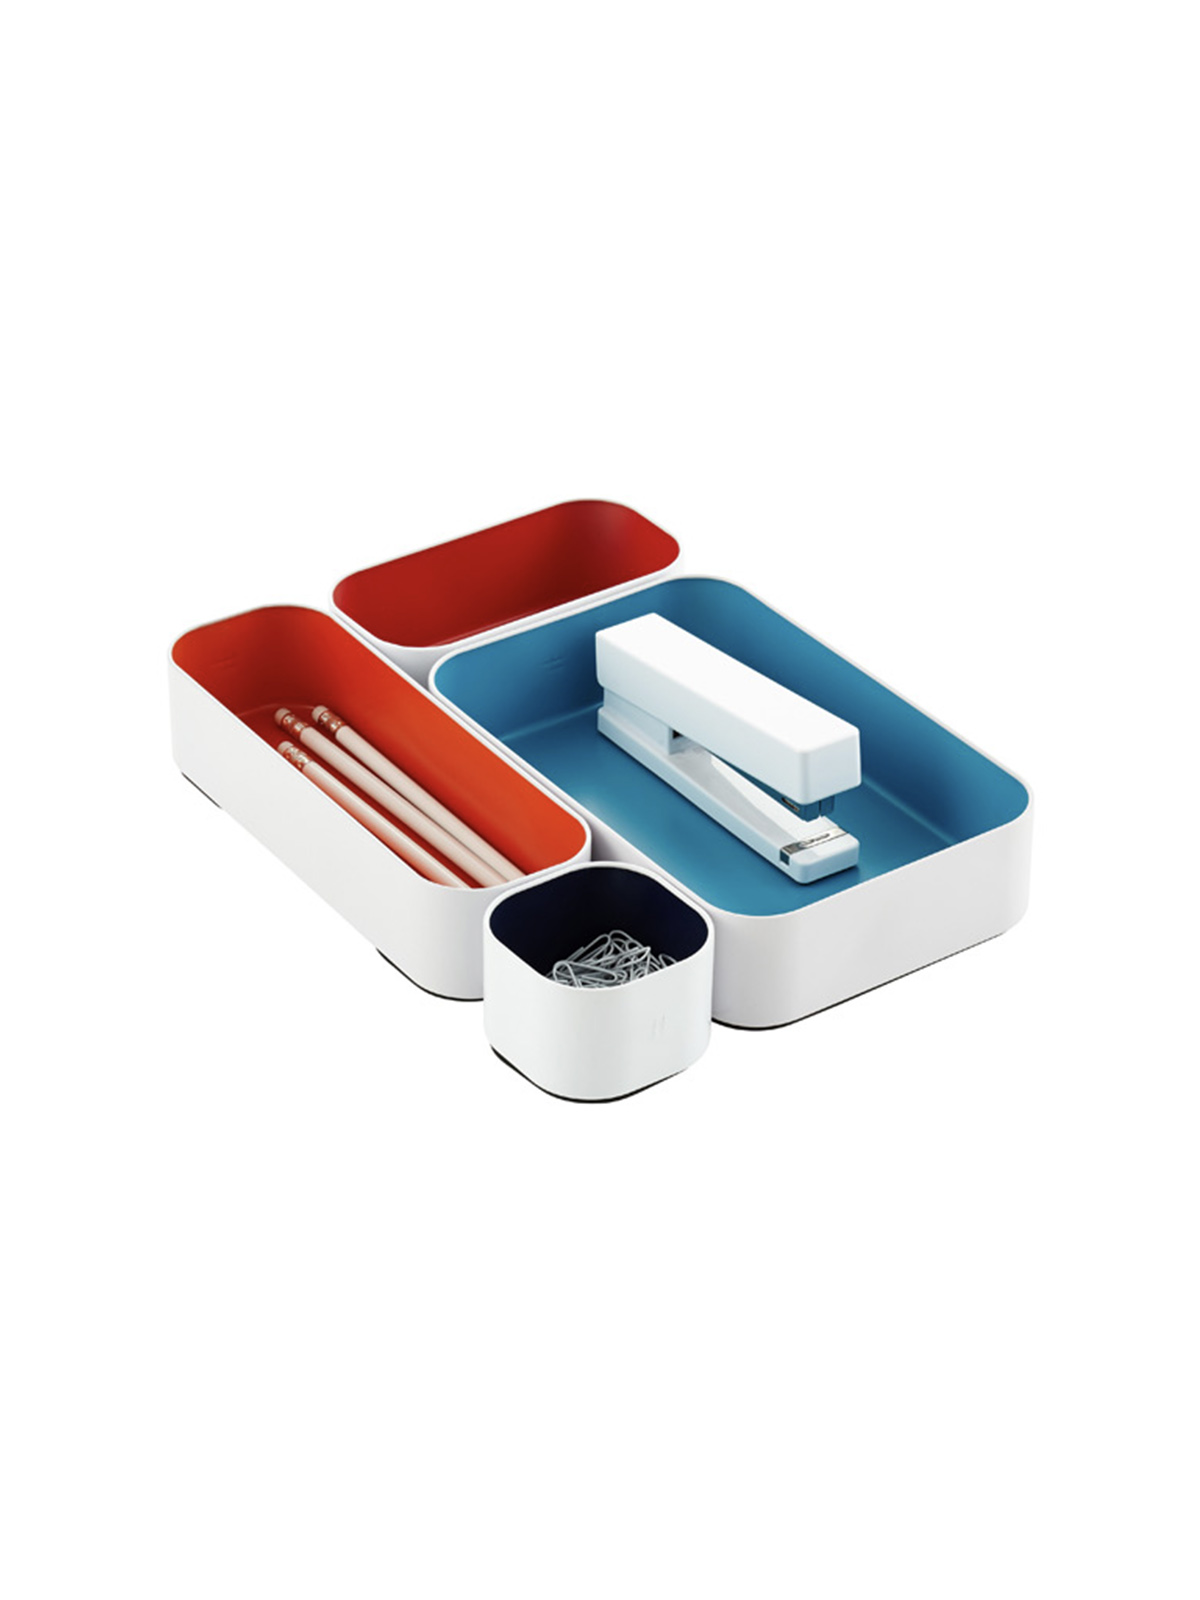 Best Desk Drawer Organizer in blue and red